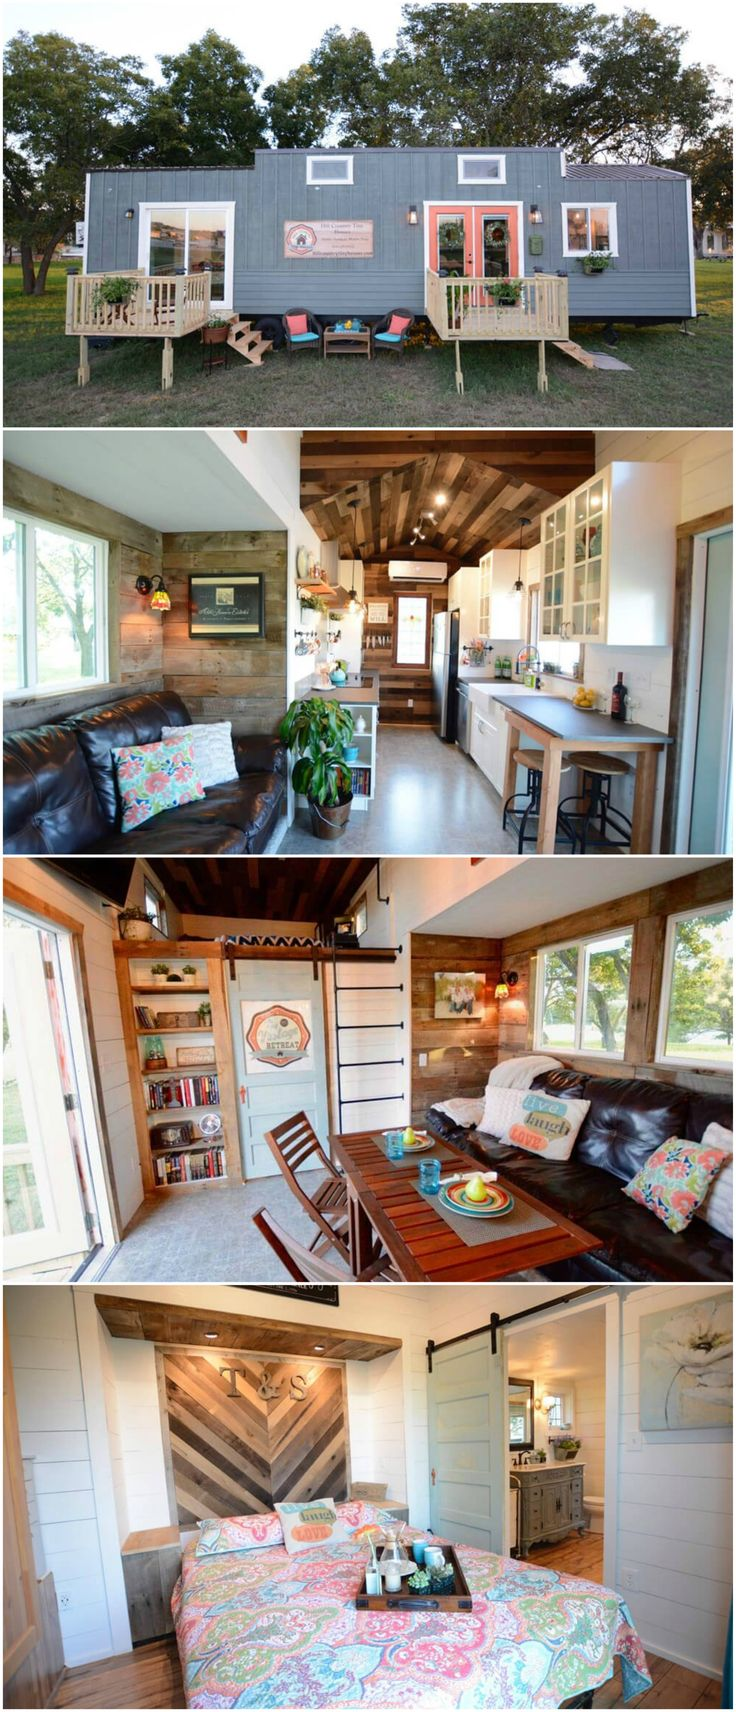 The Vintage Retreat is a wonderful tiny house built by Texas-based Hill Country Tiny Houses. The 384-square-foot tiny home has two steel slide-outs, a main floor master bedroom, and an additional 70-square-foot loft. The tiny house features two vintage stained glass windows, white shiplap walls, and a barn wood ceiling and accent walls. The master bedroom has a sliding glass door that leads onto one of the two decks.